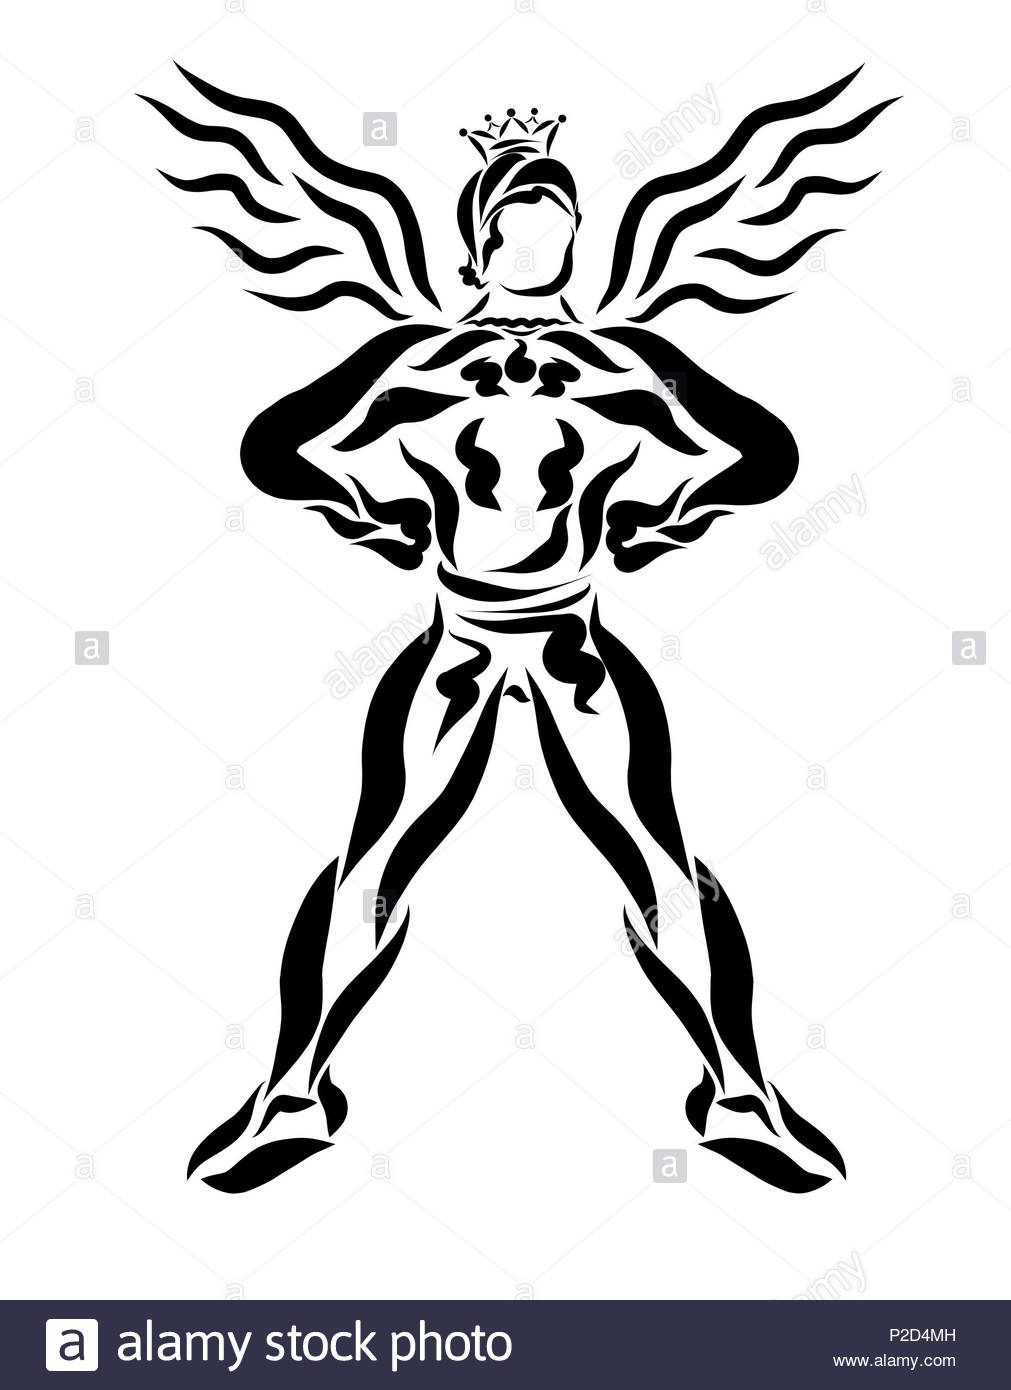 Muscular winged prince, mystical superhero - Stock Image